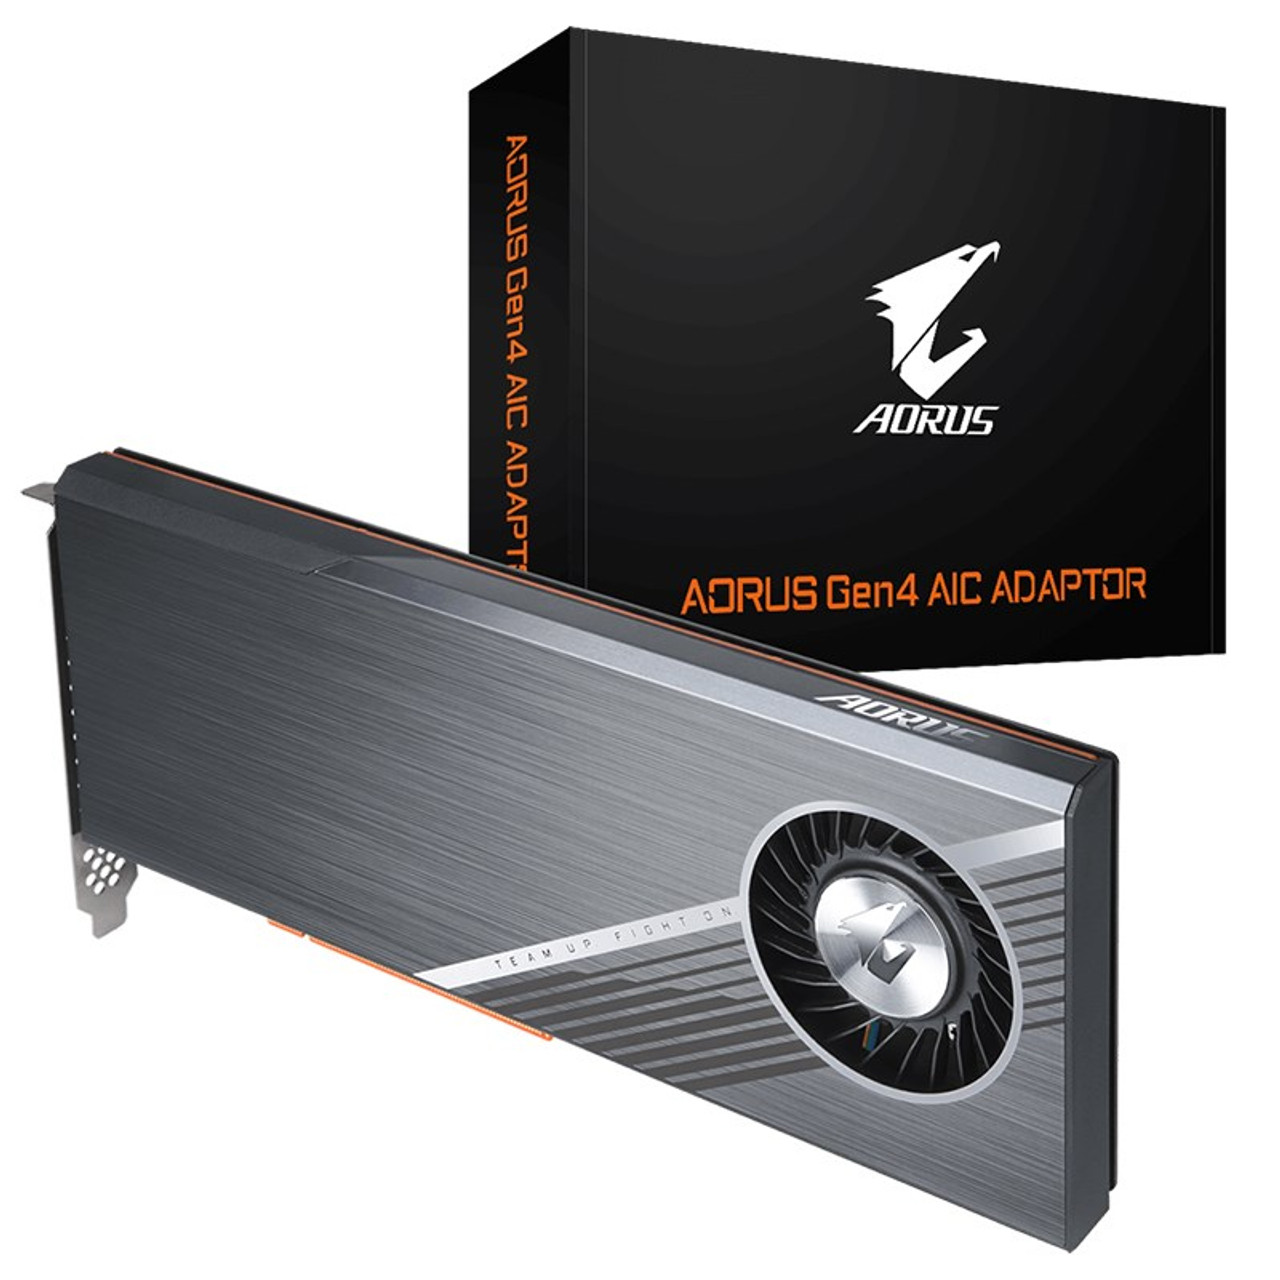 Image for Gigabyte AORUS Gen 4 PCIe AIC SSD Adaptor CX Computer Superstore